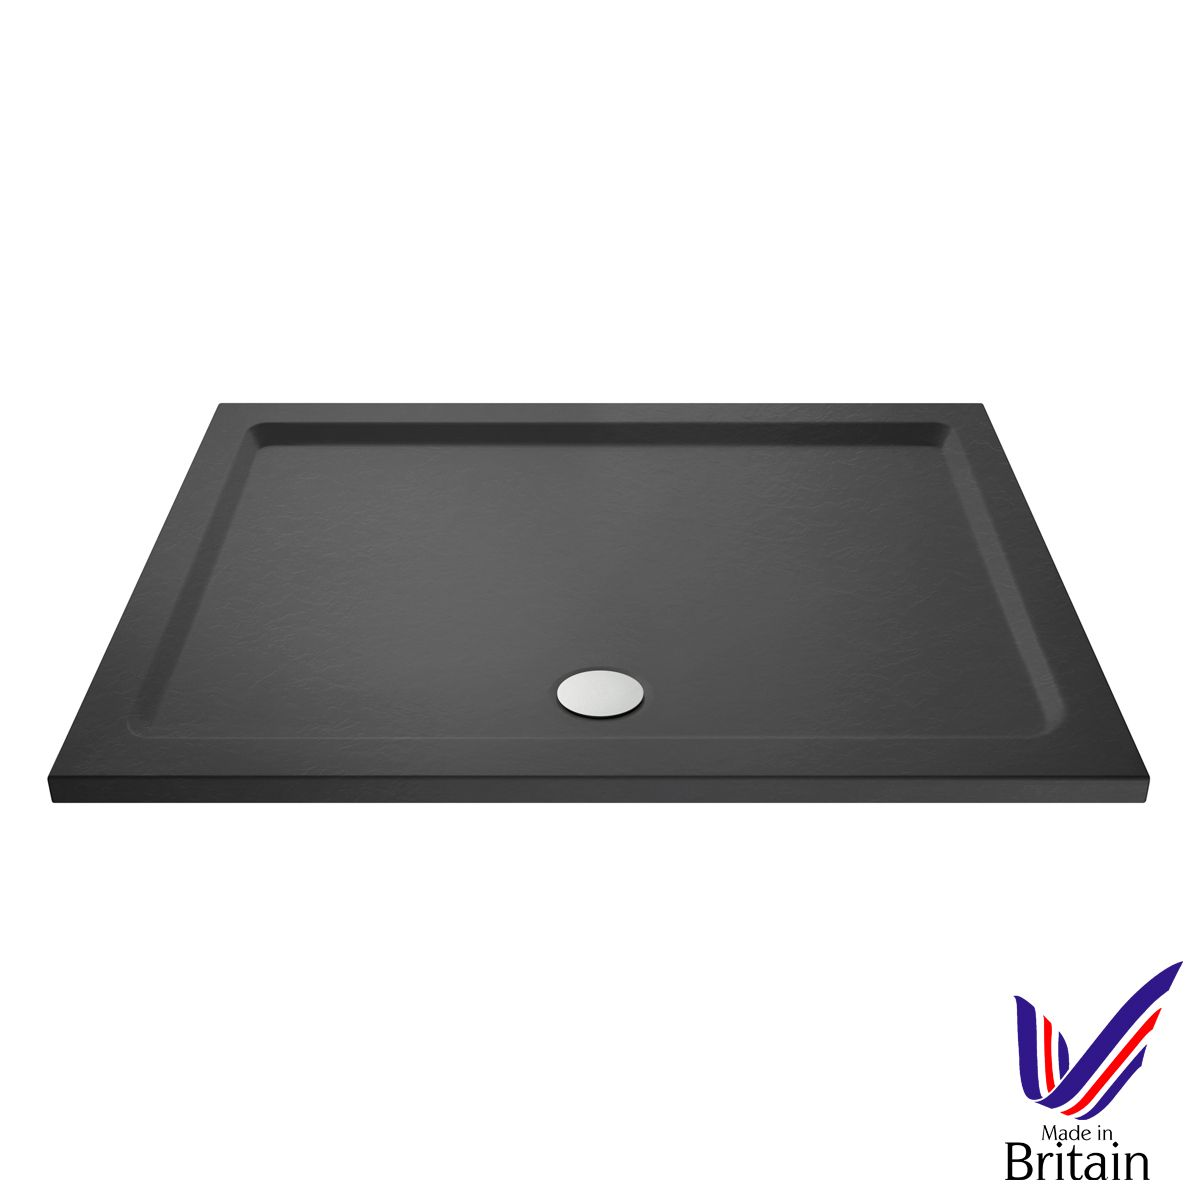 1300 x 800 Shower Tray Slate Grey Rectangular Low Profile by Pearlstone